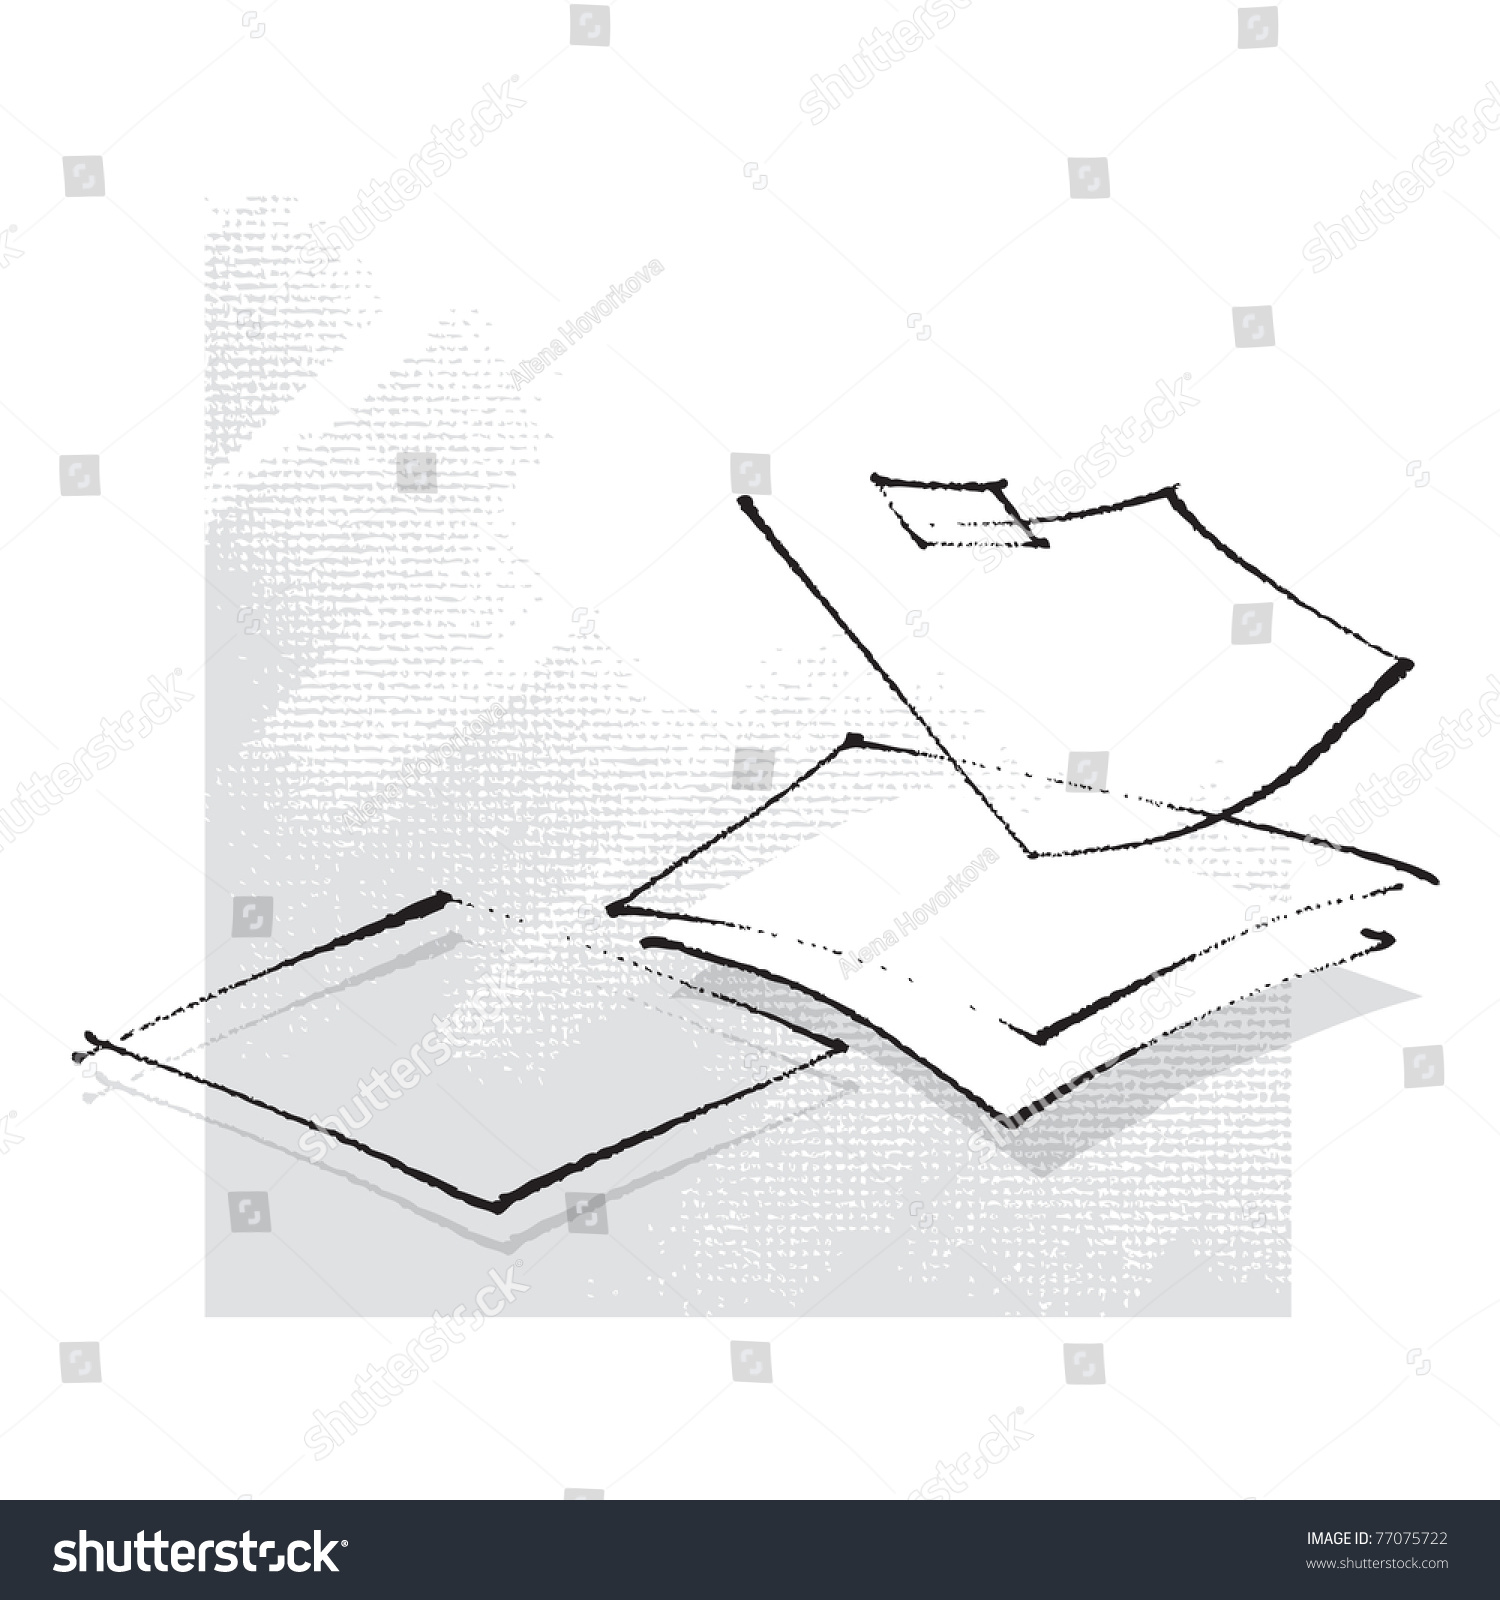 Drawing Lines Freehand : Empty sheets of paper simple stylized line freehand